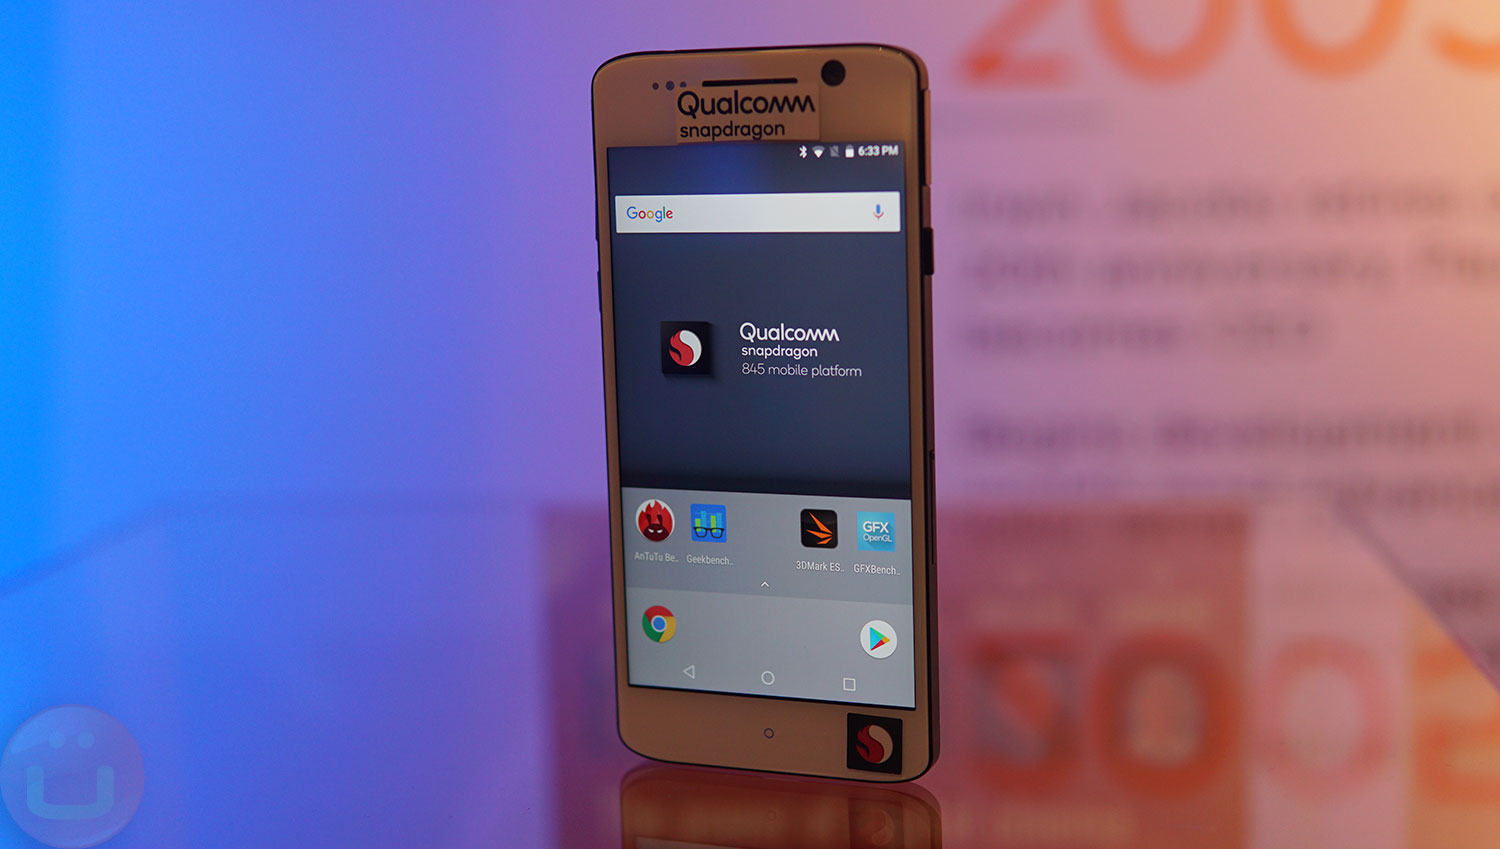 Qualcomm Snapdragon 845 Speed Tests | Ubergizmo